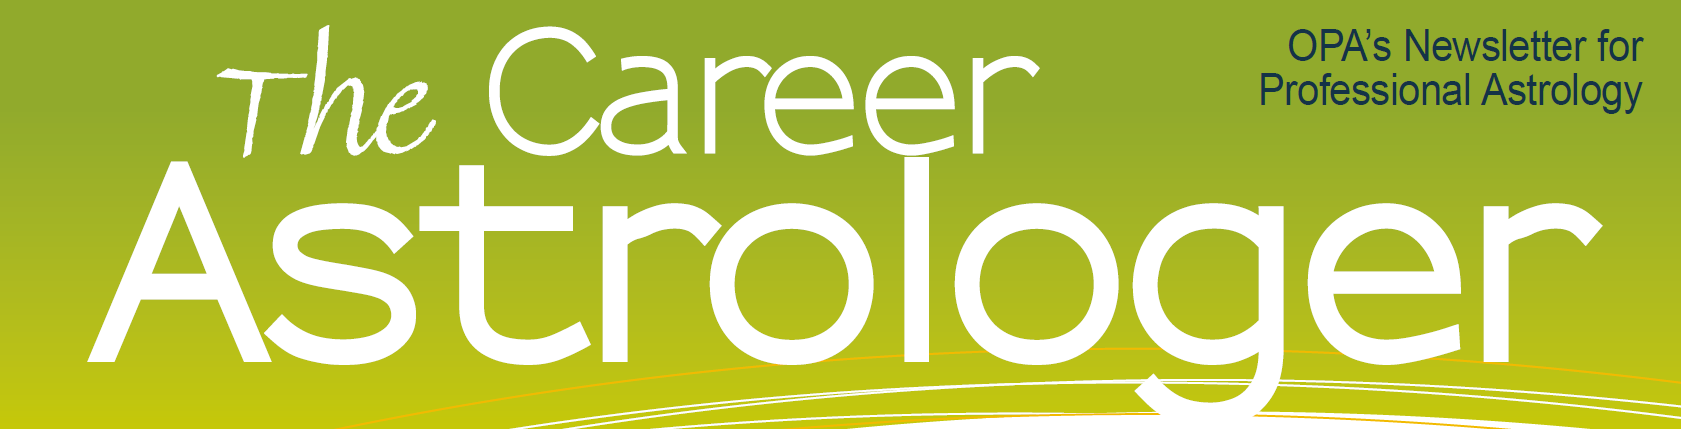 Career Astrologer Banner